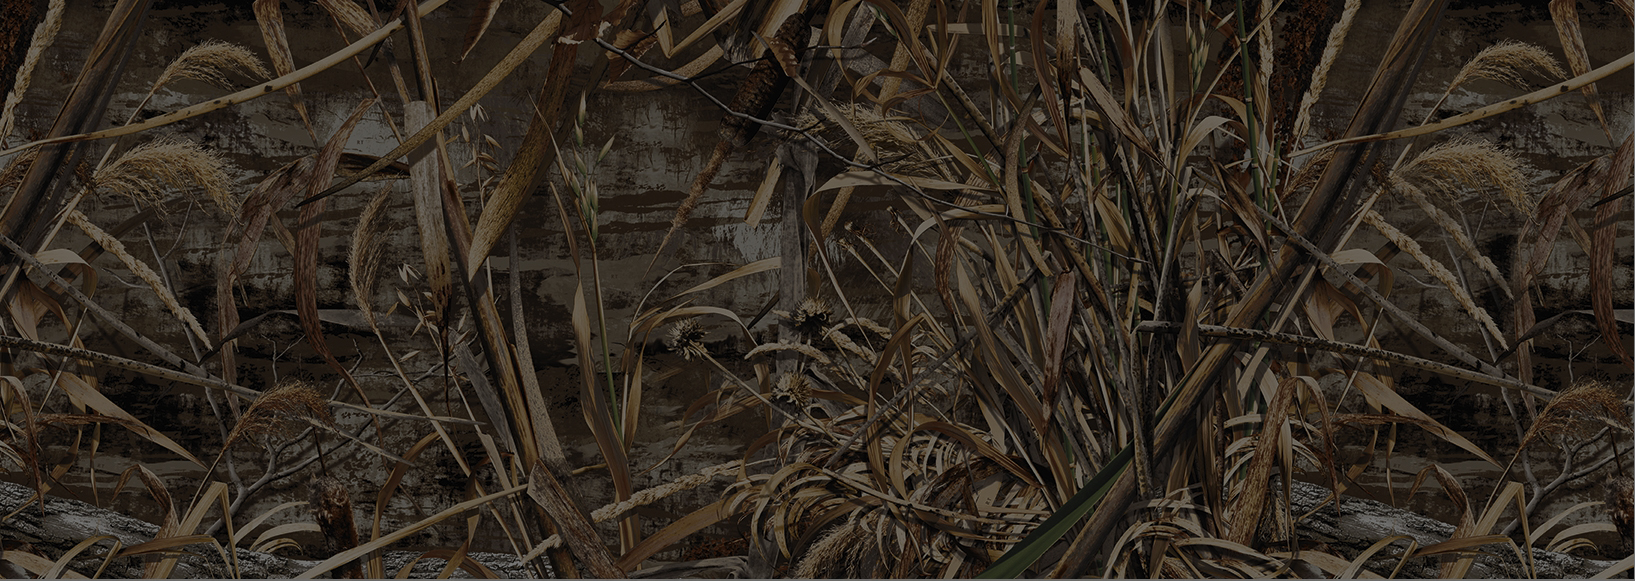 Background_Realtree_Darker